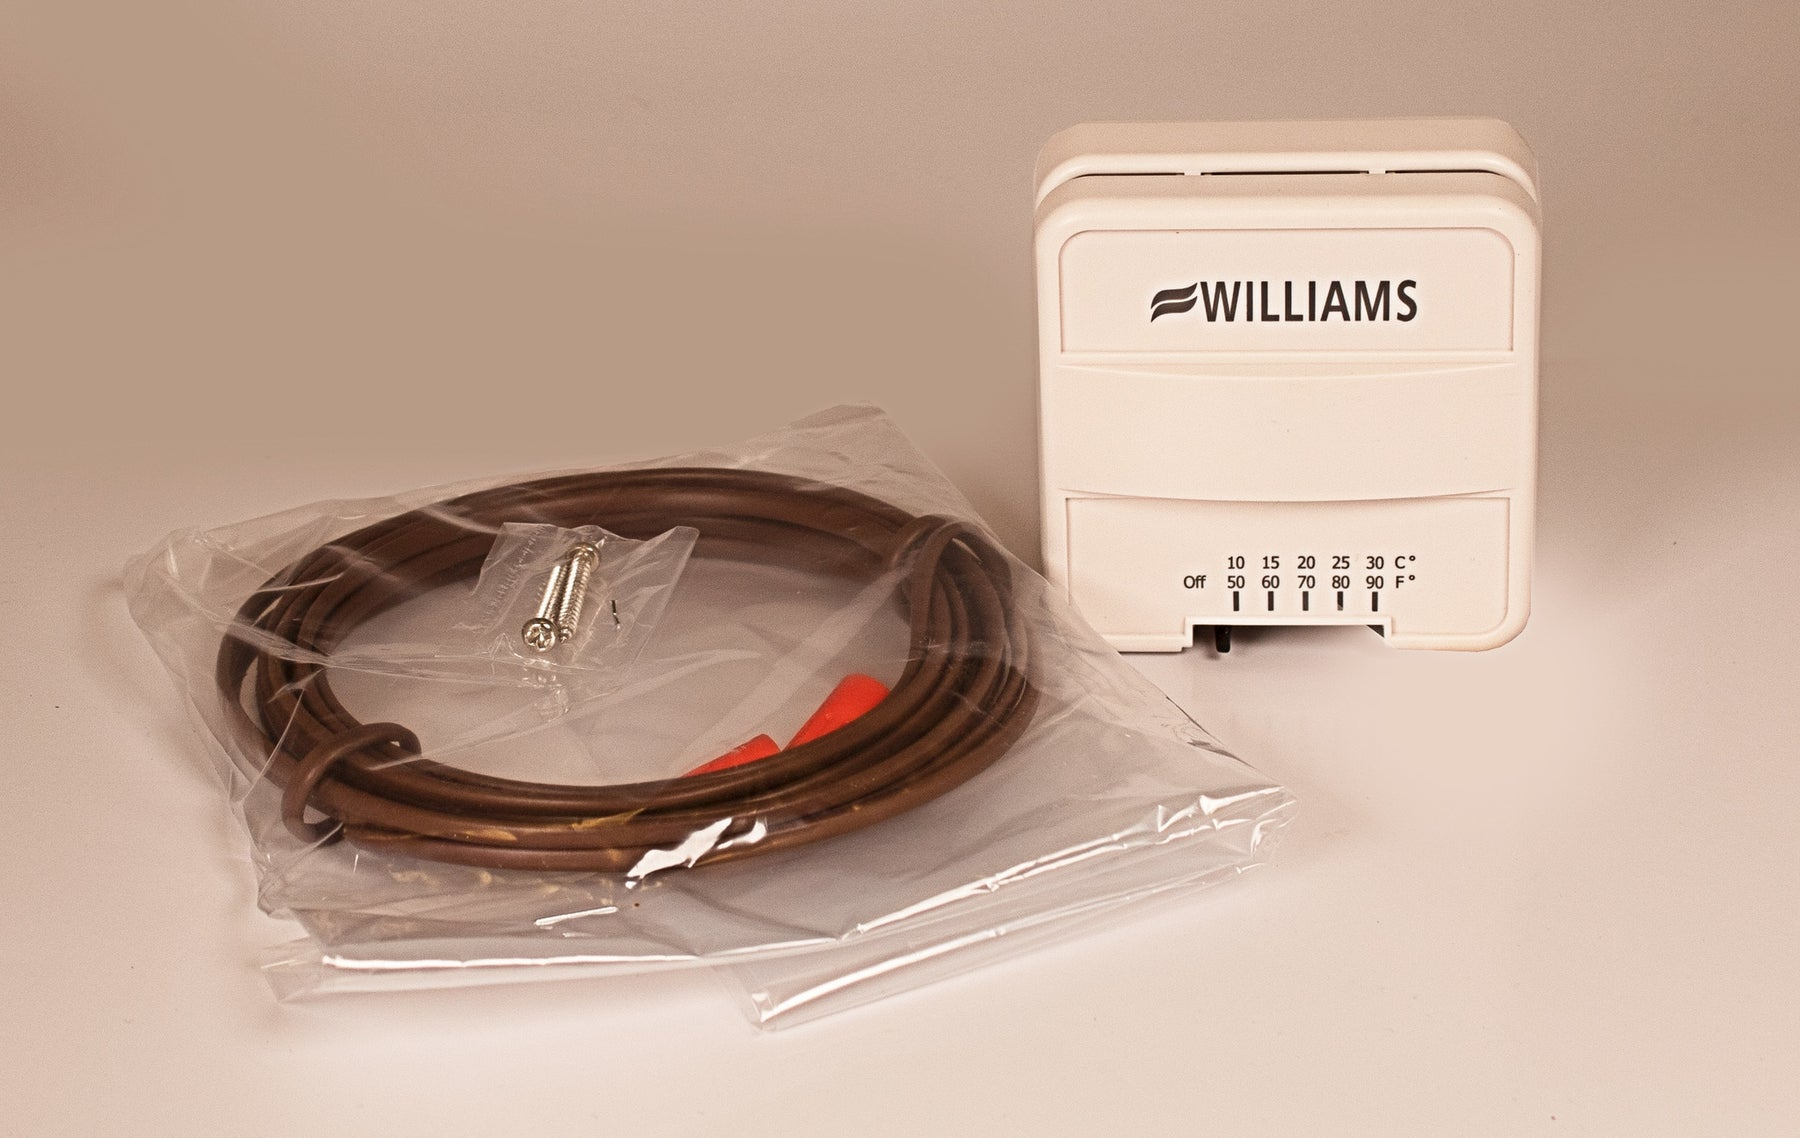 Williams 15' Wire for Thermostat